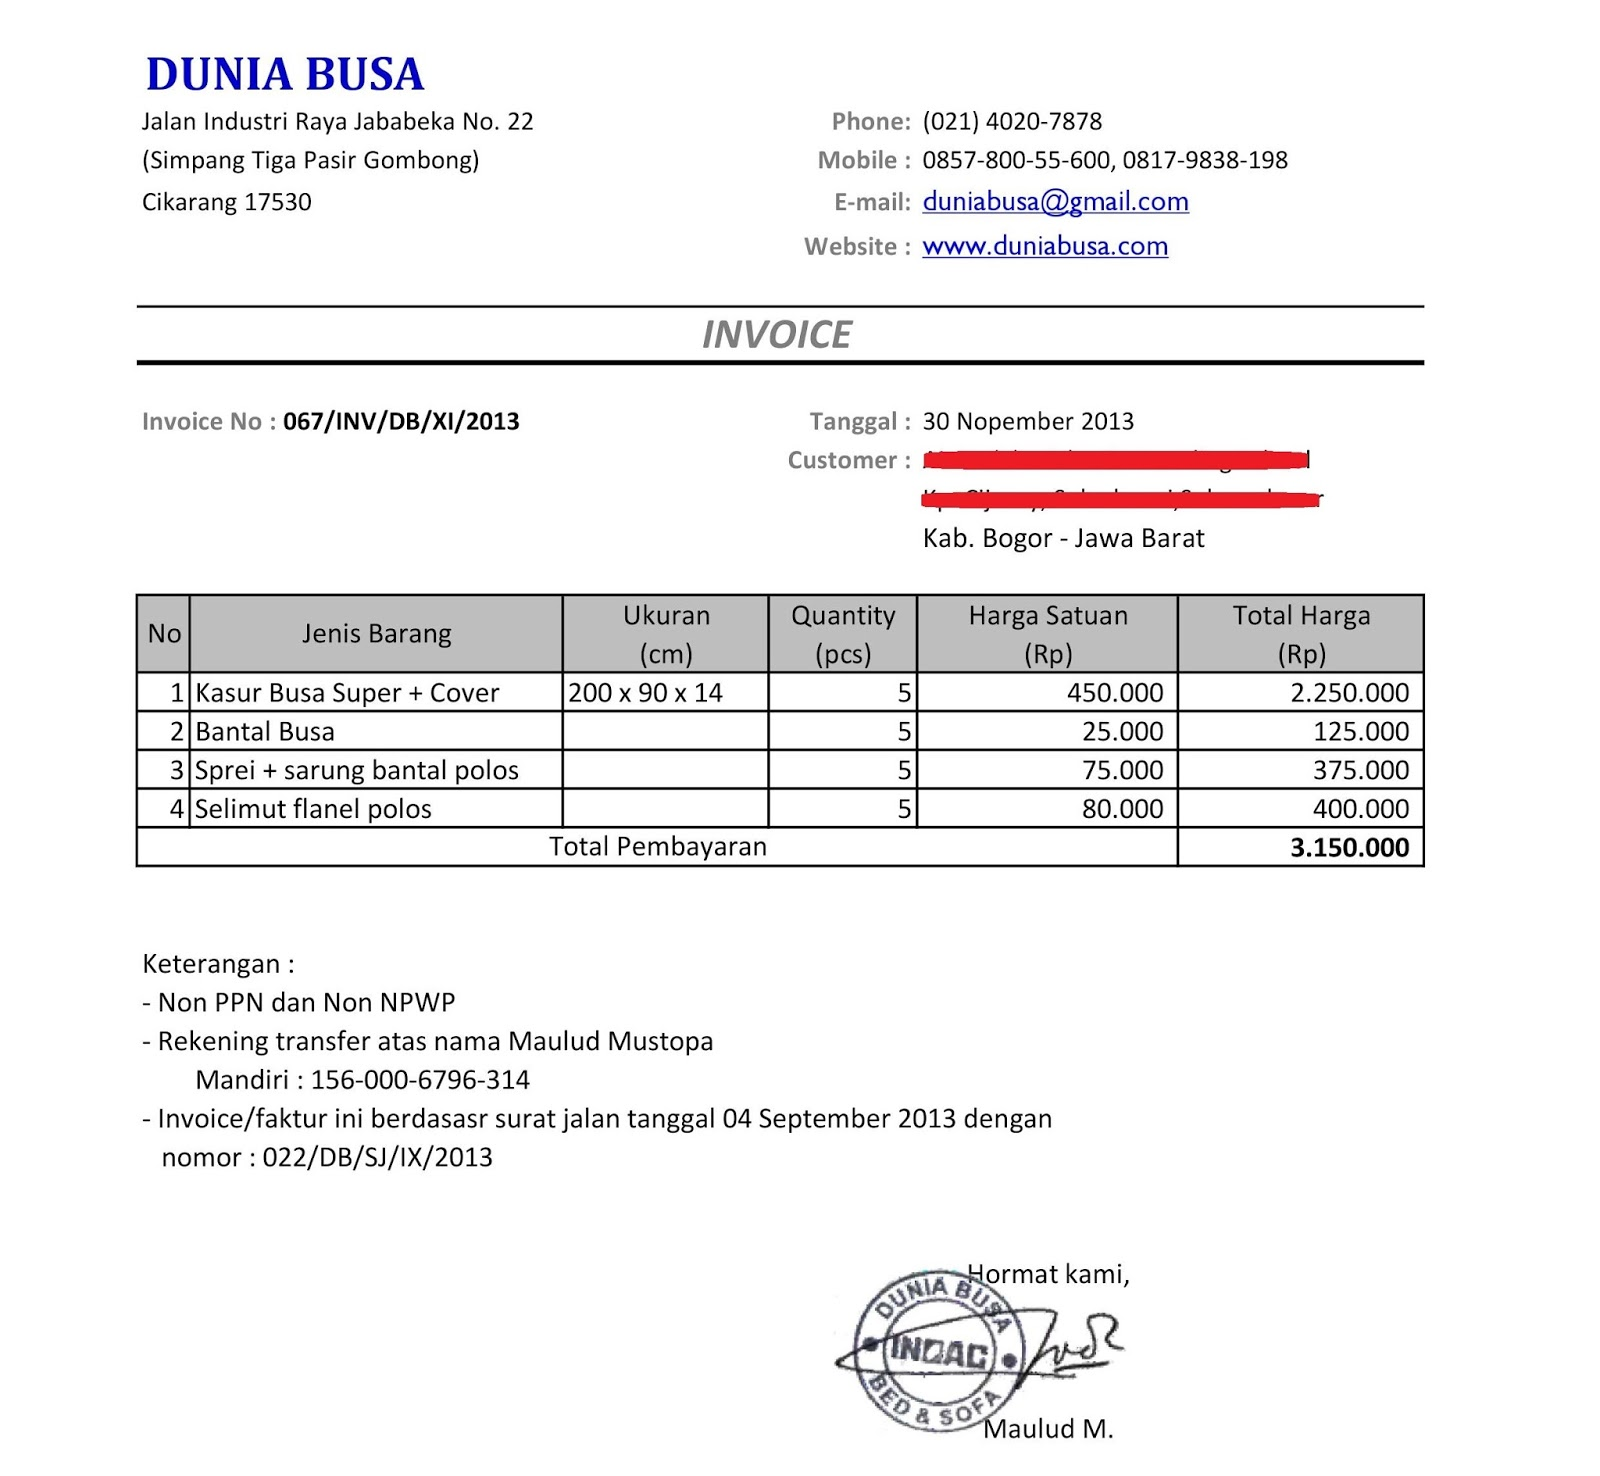 Usdgus  Outstanding Free Invoice Online  Create Invoice Online  Invoice Template  With Engaging Contoh Format Invoice Atau Surat Tagihan  Brankas Arsip  Free Invoice Online With Easy On The Eye Jeep Invoice Price Also Invoice Templates For Mac In Addition Water Damage Invoice Sample And Invoice Pdf Template As Well As Invoice Express Additionally Proforma Invoice Sample From Sklepco With Usdgus  Engaging Free Invoice Online  Create Invoice Online  Invoice Template  With Easy On The Eye Contoh Format Invoice Atau Surat Tagihan  Brankas Arsip  Free Invoice Online And Outstanding Jeep Invoice Price Also Invoice Templates For Mac In Addition Water Damage Invoice Sample From Sklepco